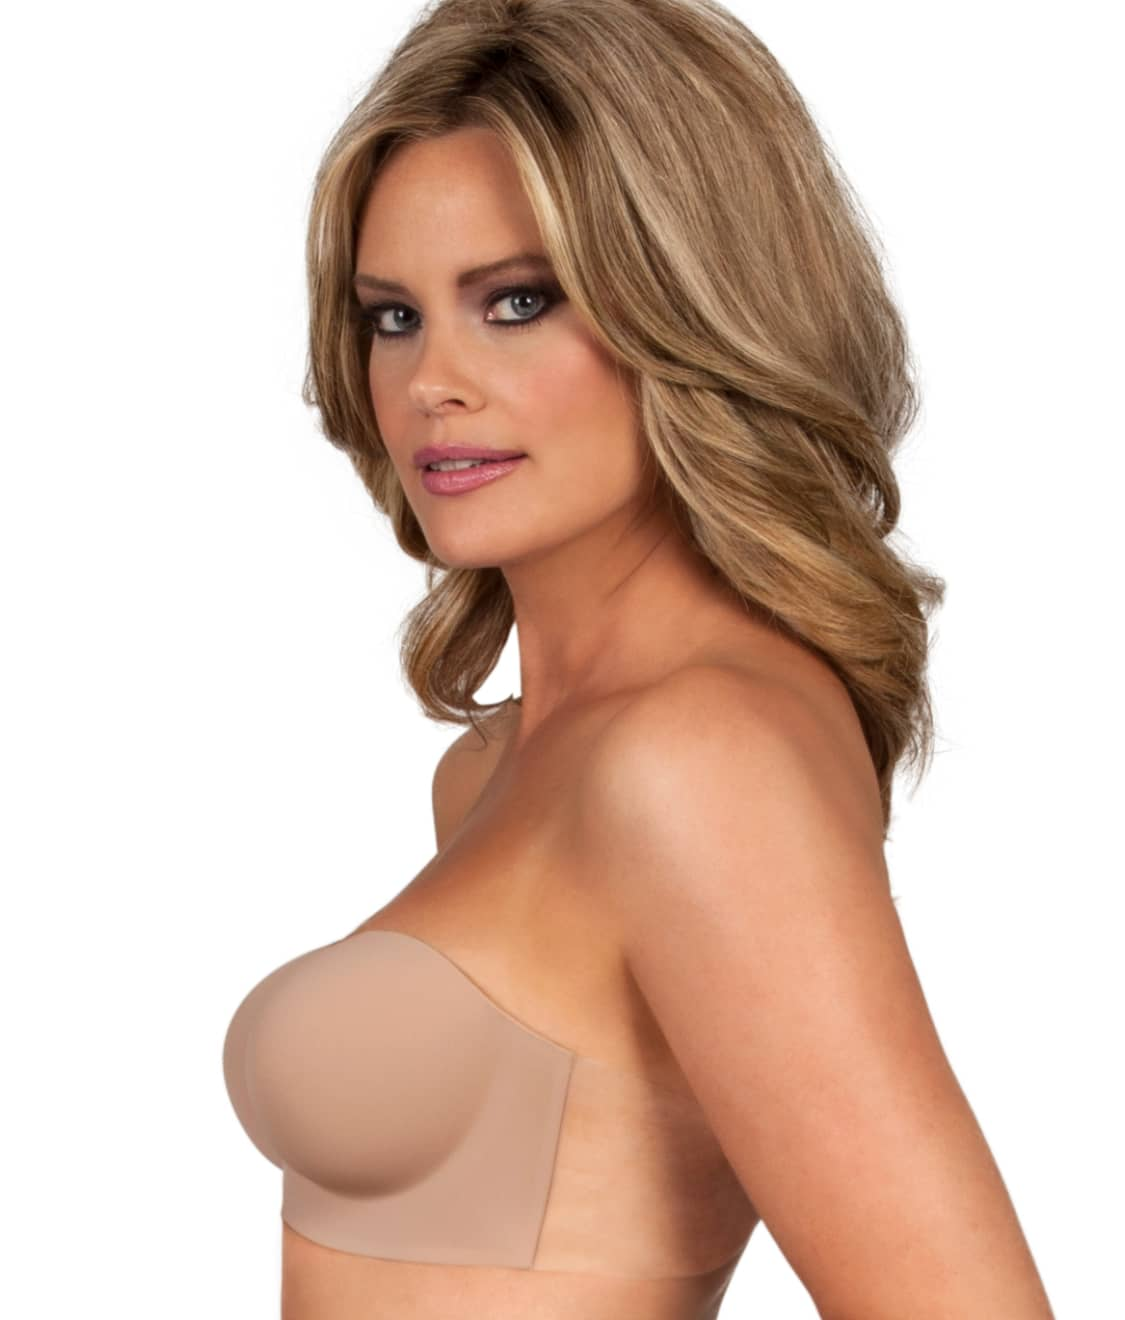 Fashion Forms Voluptuous Backless Strapless Adhesive Bra Nude FASHION HAVEN